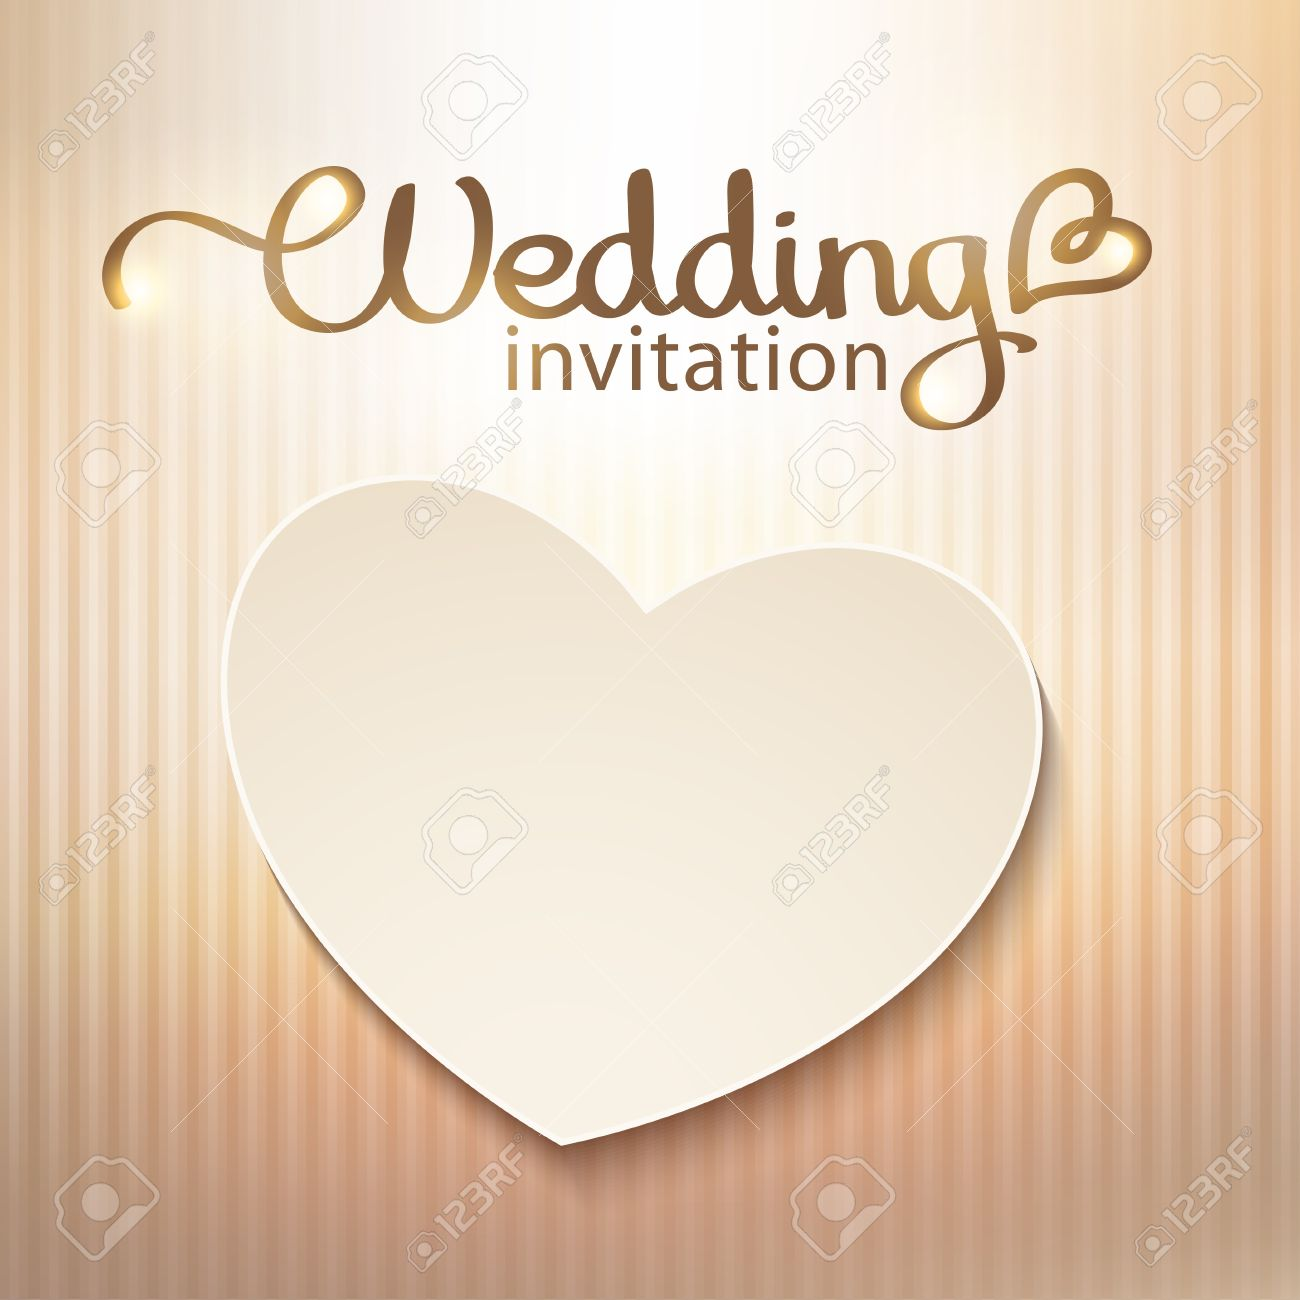 Wedding Invitation With Paper Heart And Gold Background Royalty Free ...